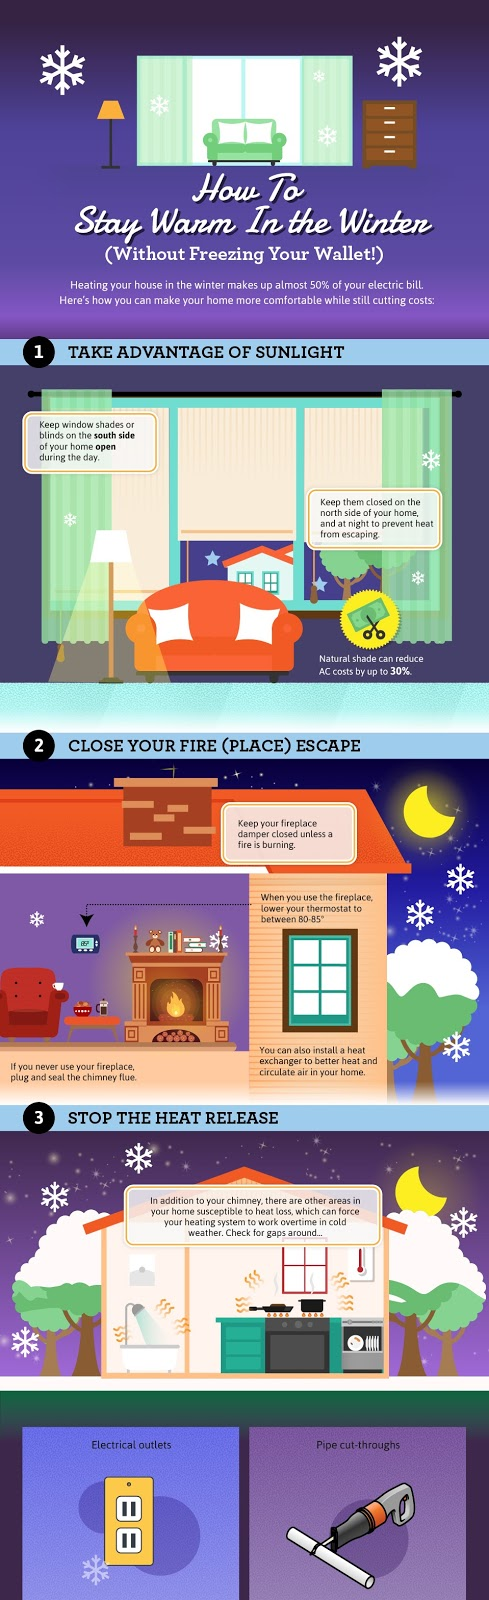 Stay Warm This Winter on a Budget